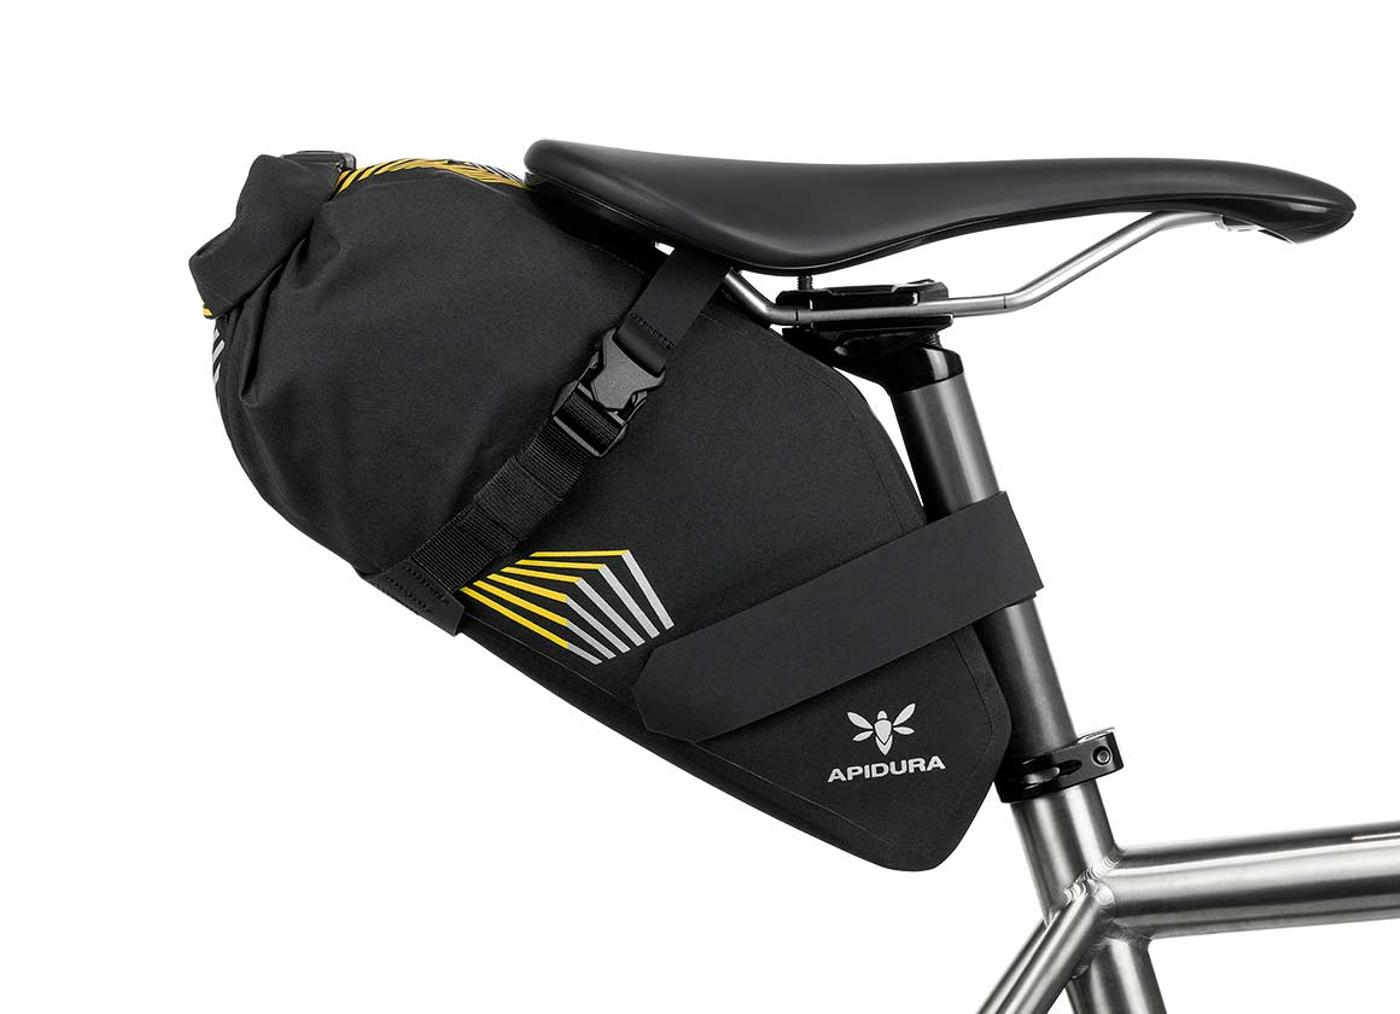 Apidura Releases Ultralight Racing Bikepacking Bags